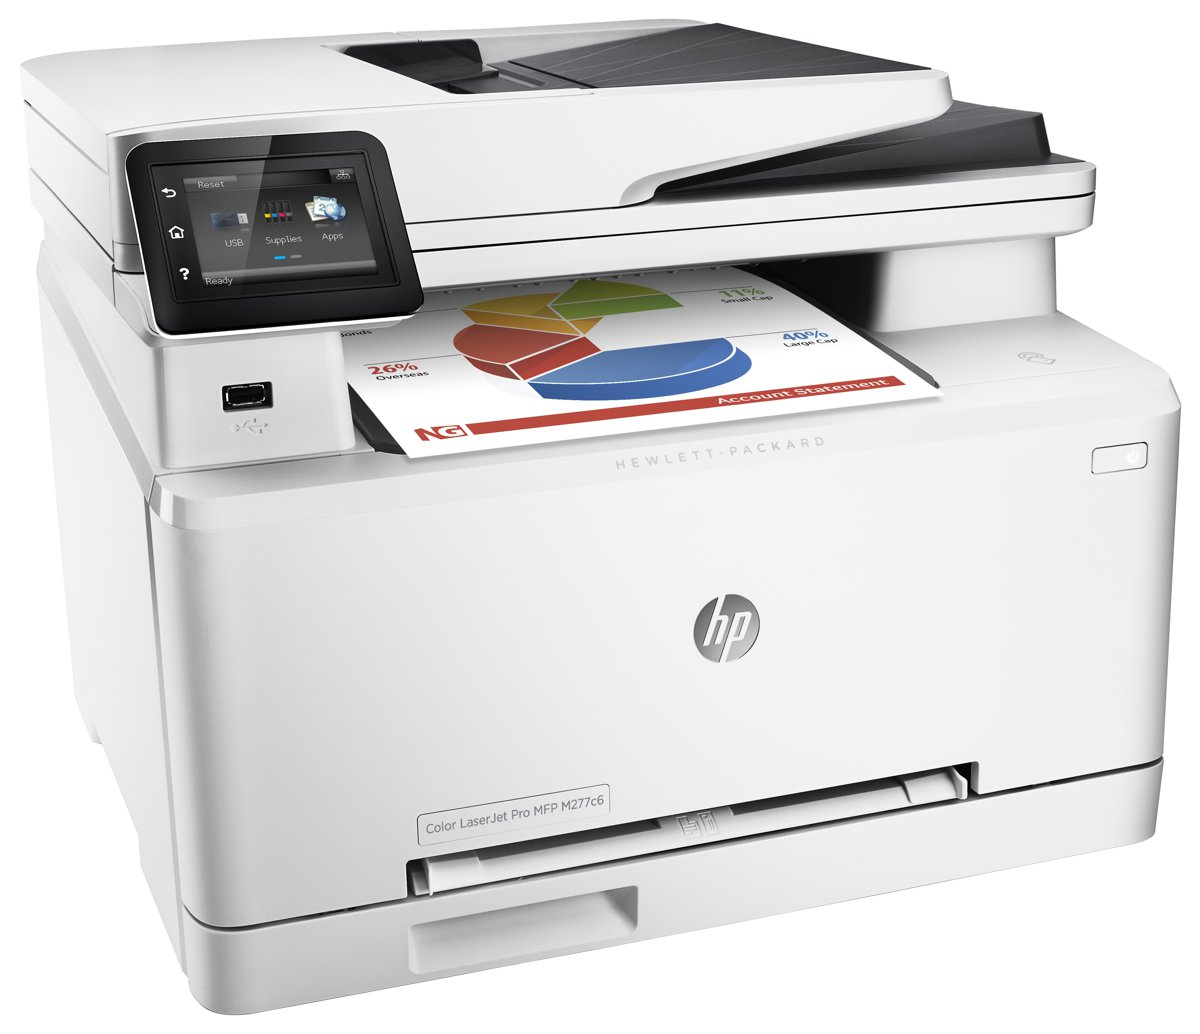 HP Color LaserJet Pro M277c6 (Compare To HP M277dw) Multifunction Printer -  19ppm Color/Black, 600x600dpi resolution, 150-Sheet Tray WiFi, NFC -  B3Q17A#BGJ ...